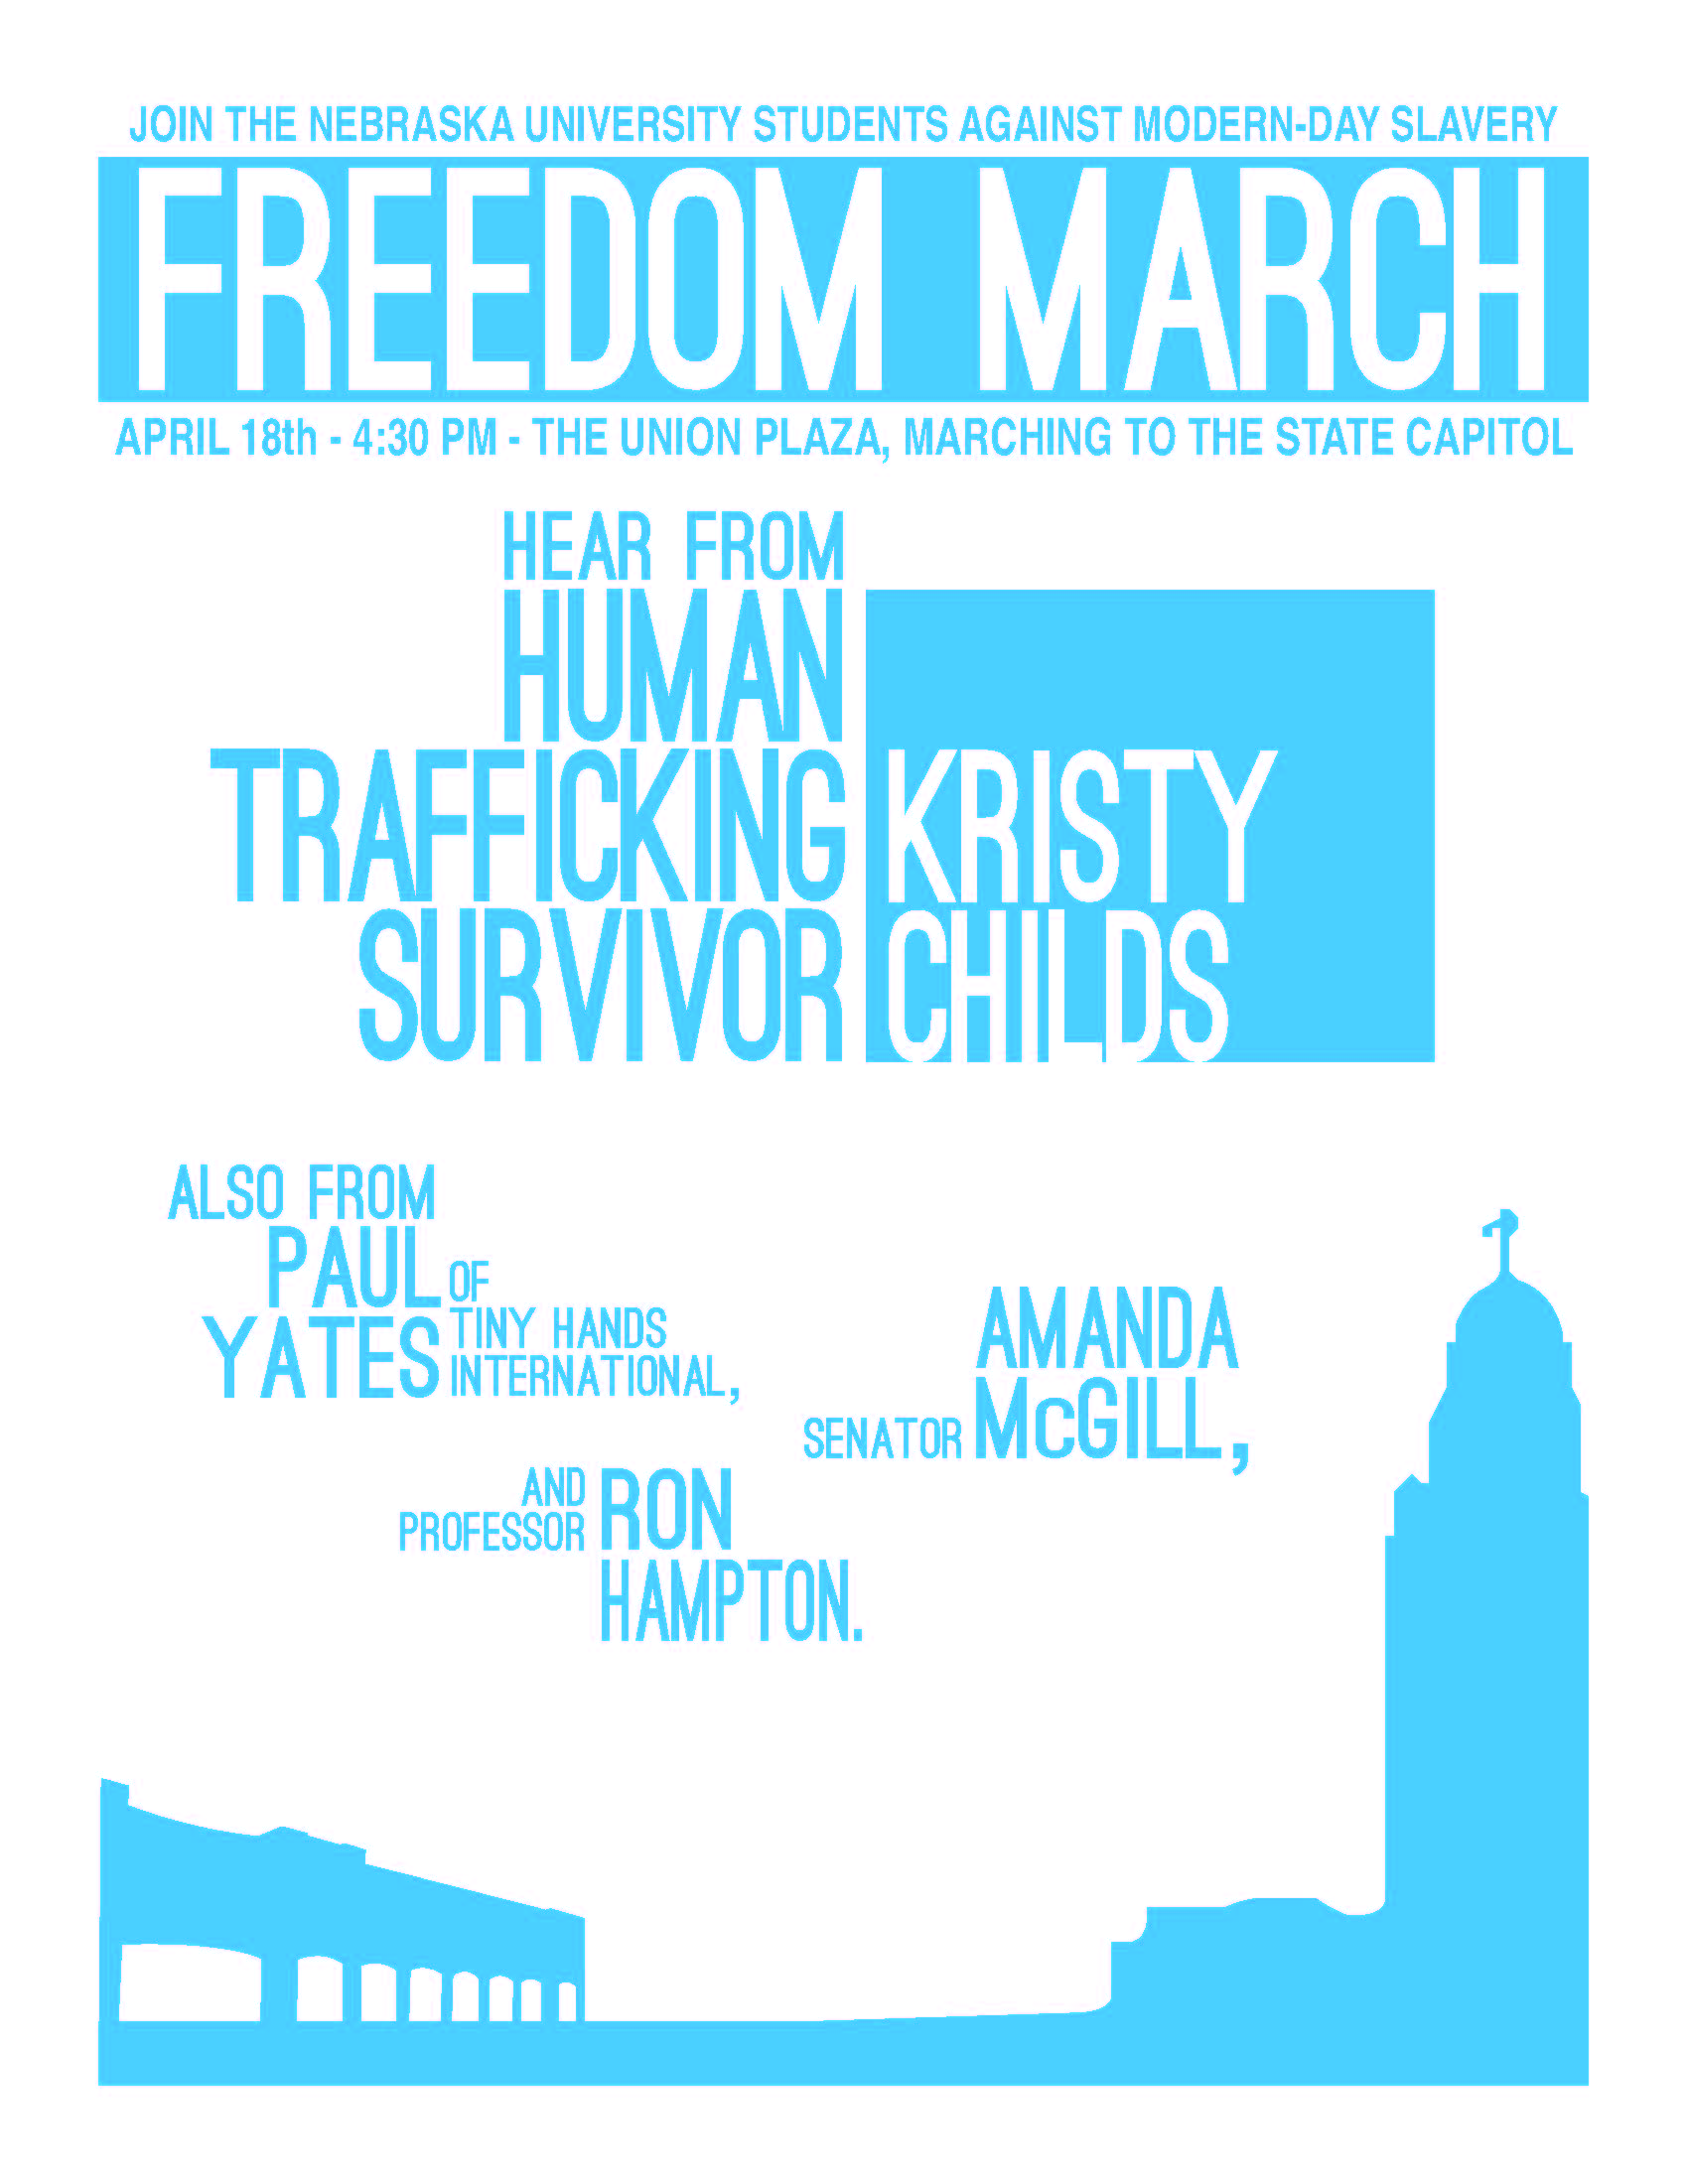 Freedom March - April 18th @ 4:30 Union Plaza